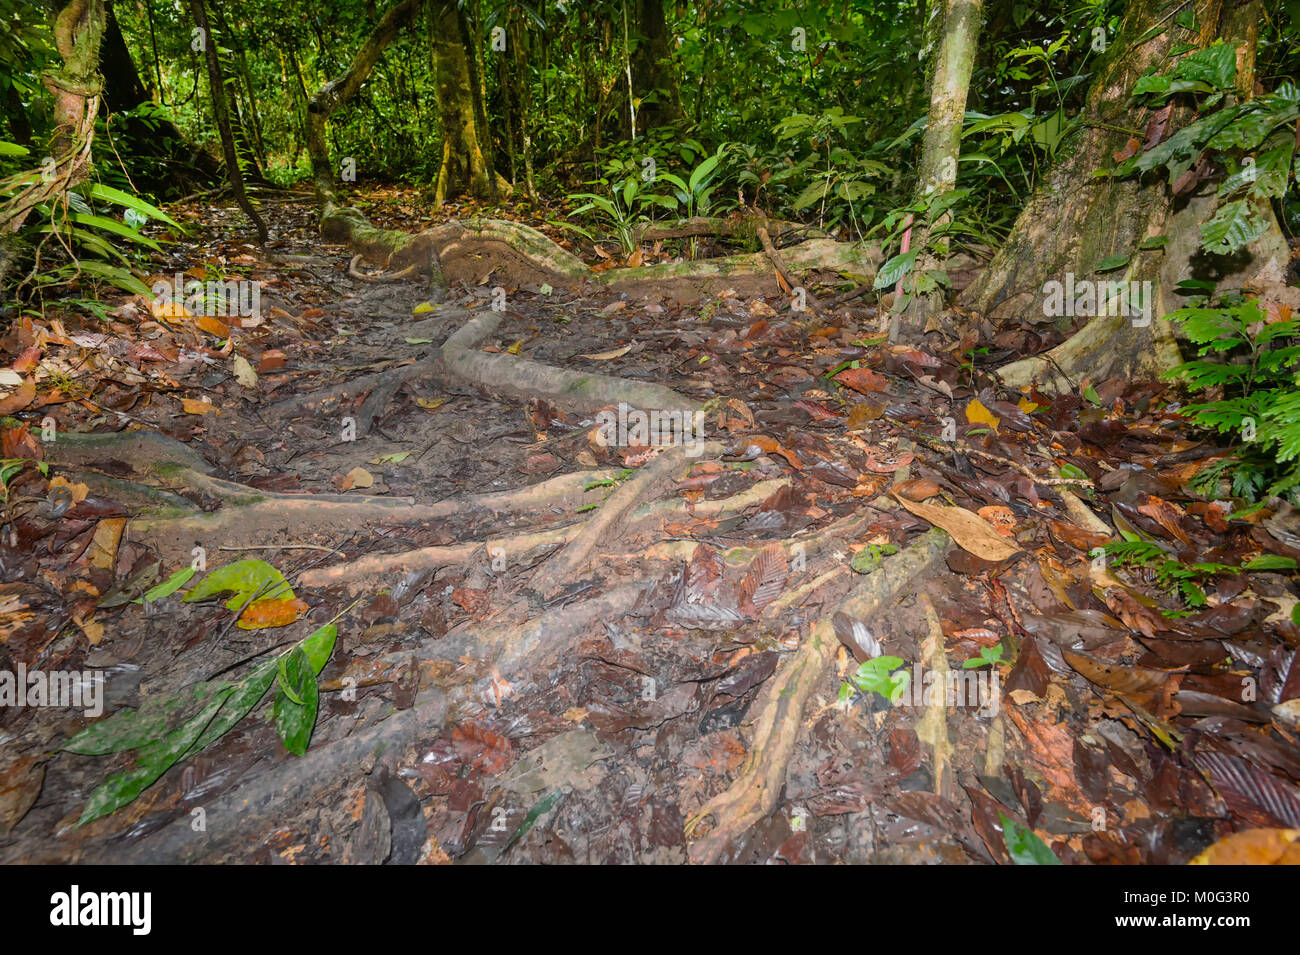 Exposed roots on the forest floor, Danum Valley Conservation Area, Borneo, Sabah, Malaysia - Stock Image